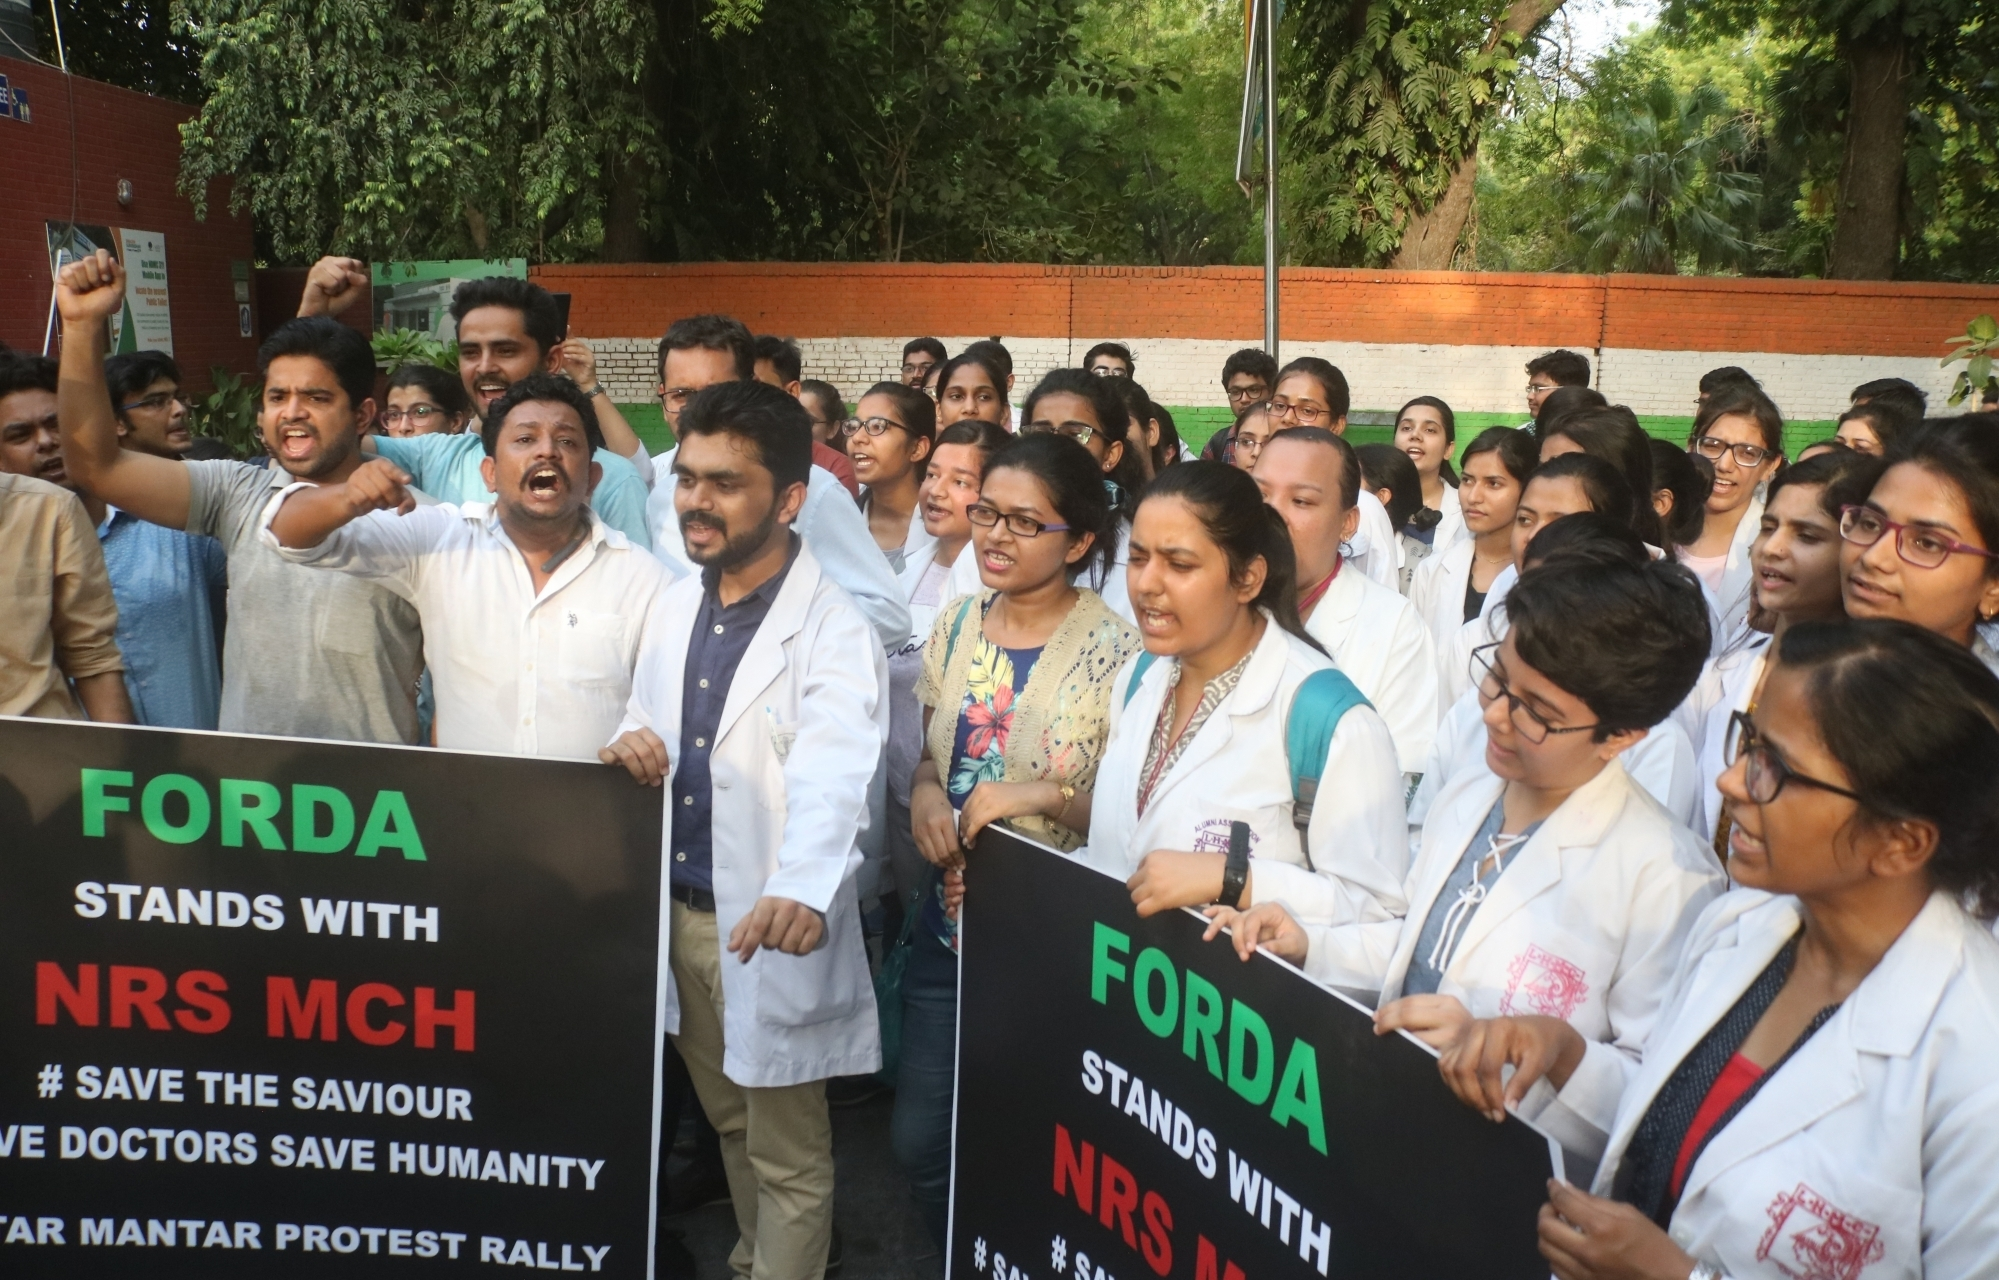 Pan-India doctors go on day-long protest in solidarity with Kolkata medicos - newsonfloor.com